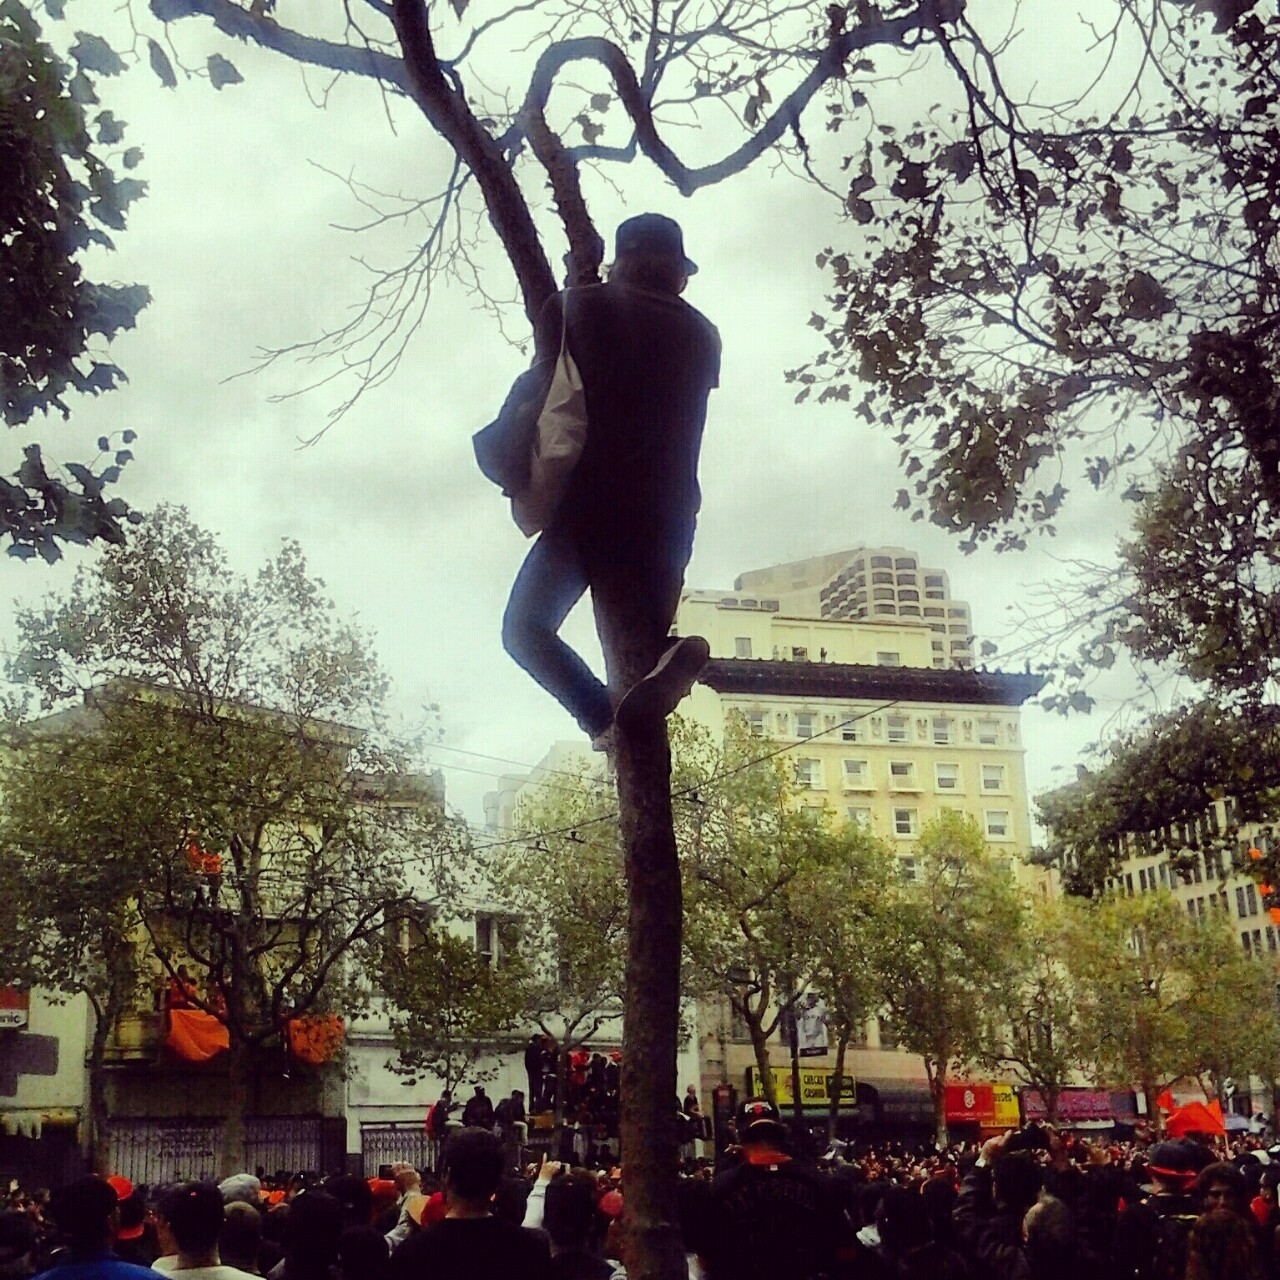 San Francisco Giants Parade! by erika echo